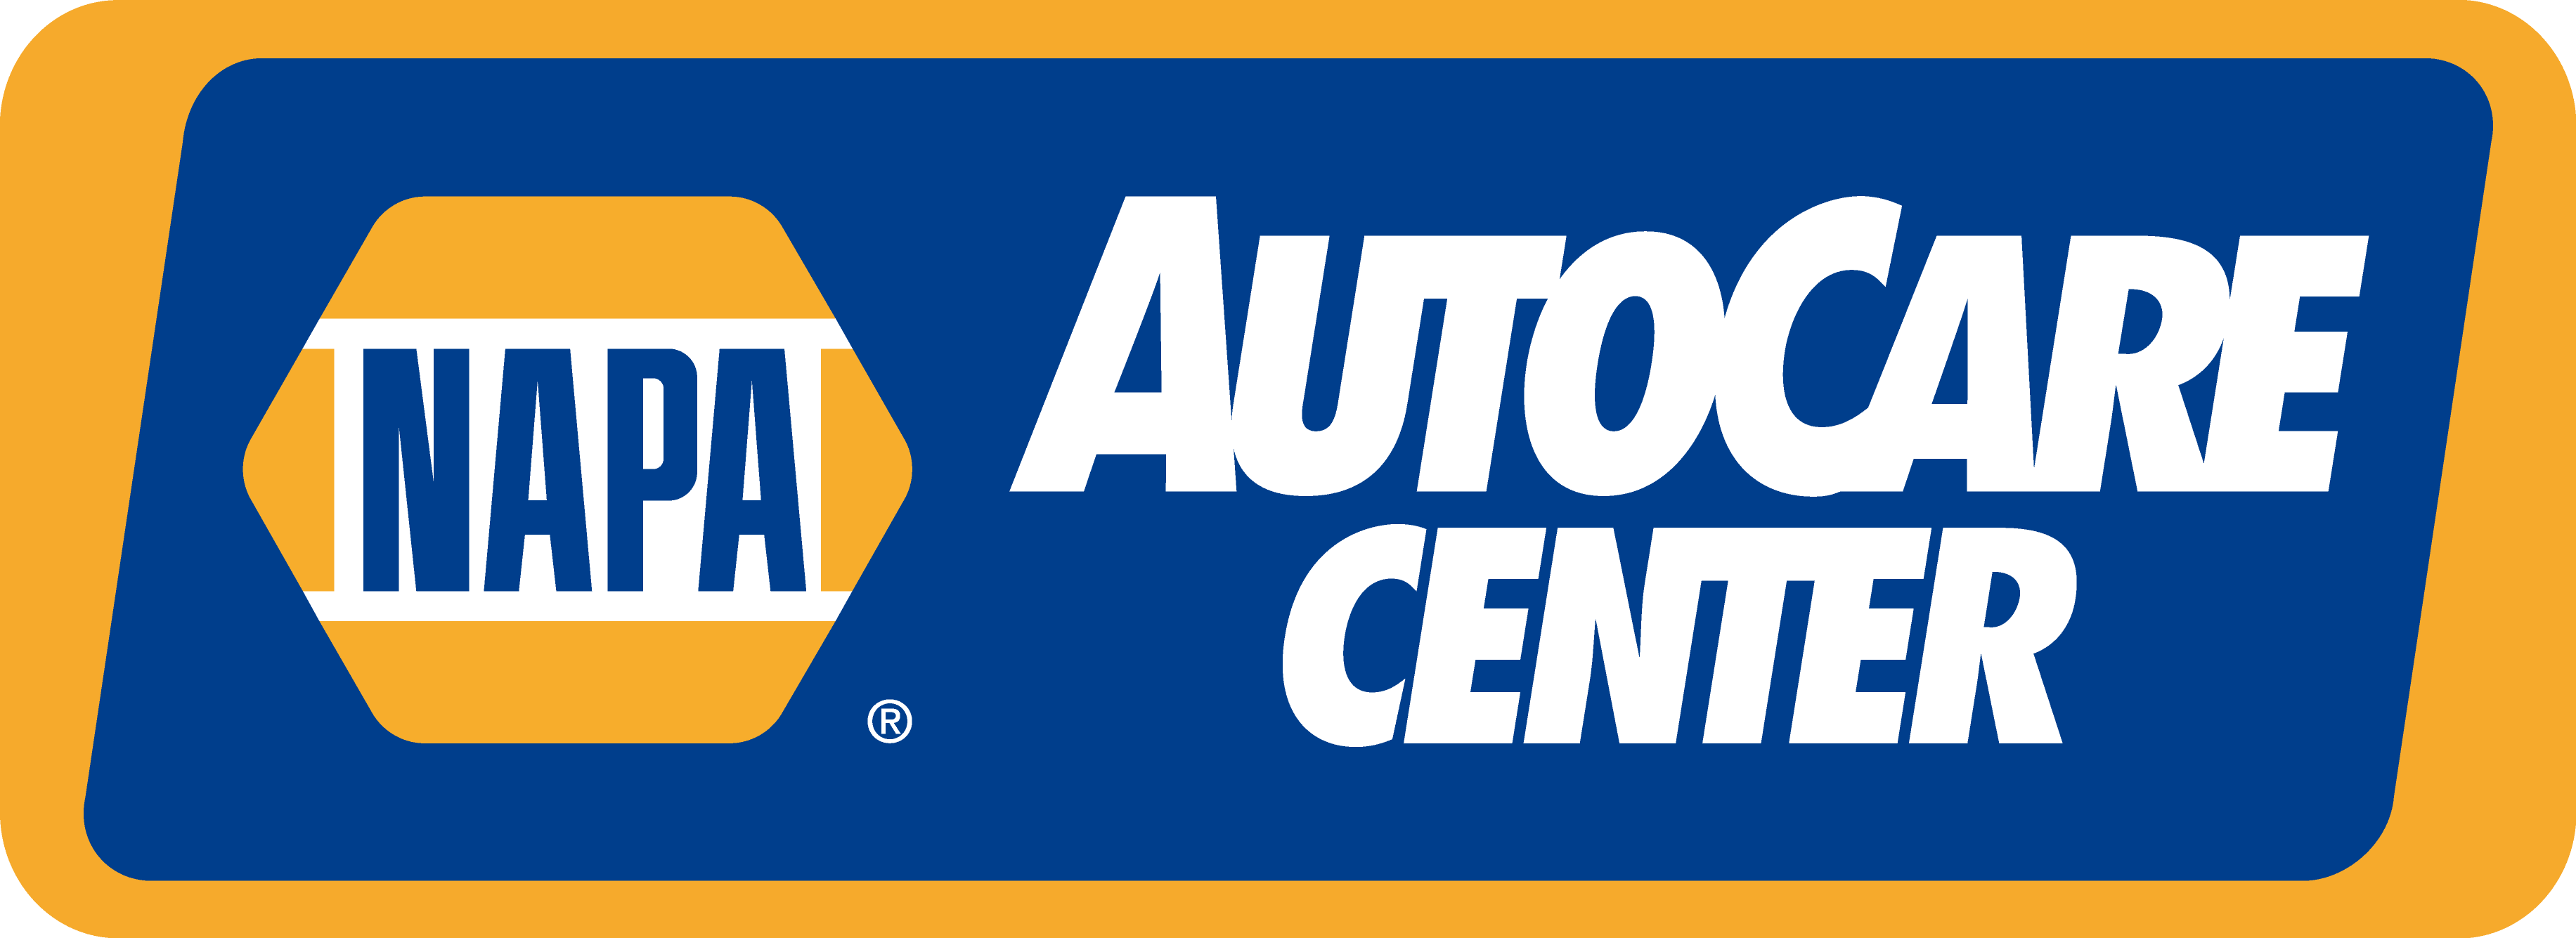 NAPA Auto Care Center, Seven 53, Lima, OH, 45807